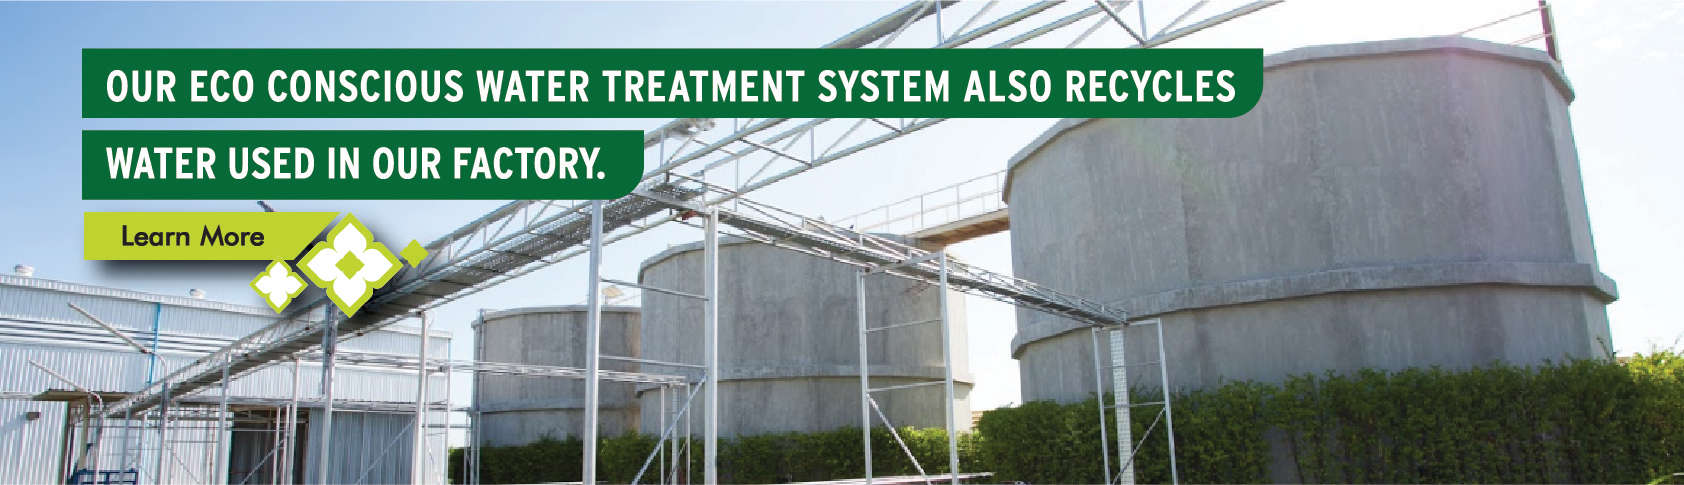 Our eco concious water treatment system also recycles water used in our factory - Learn More